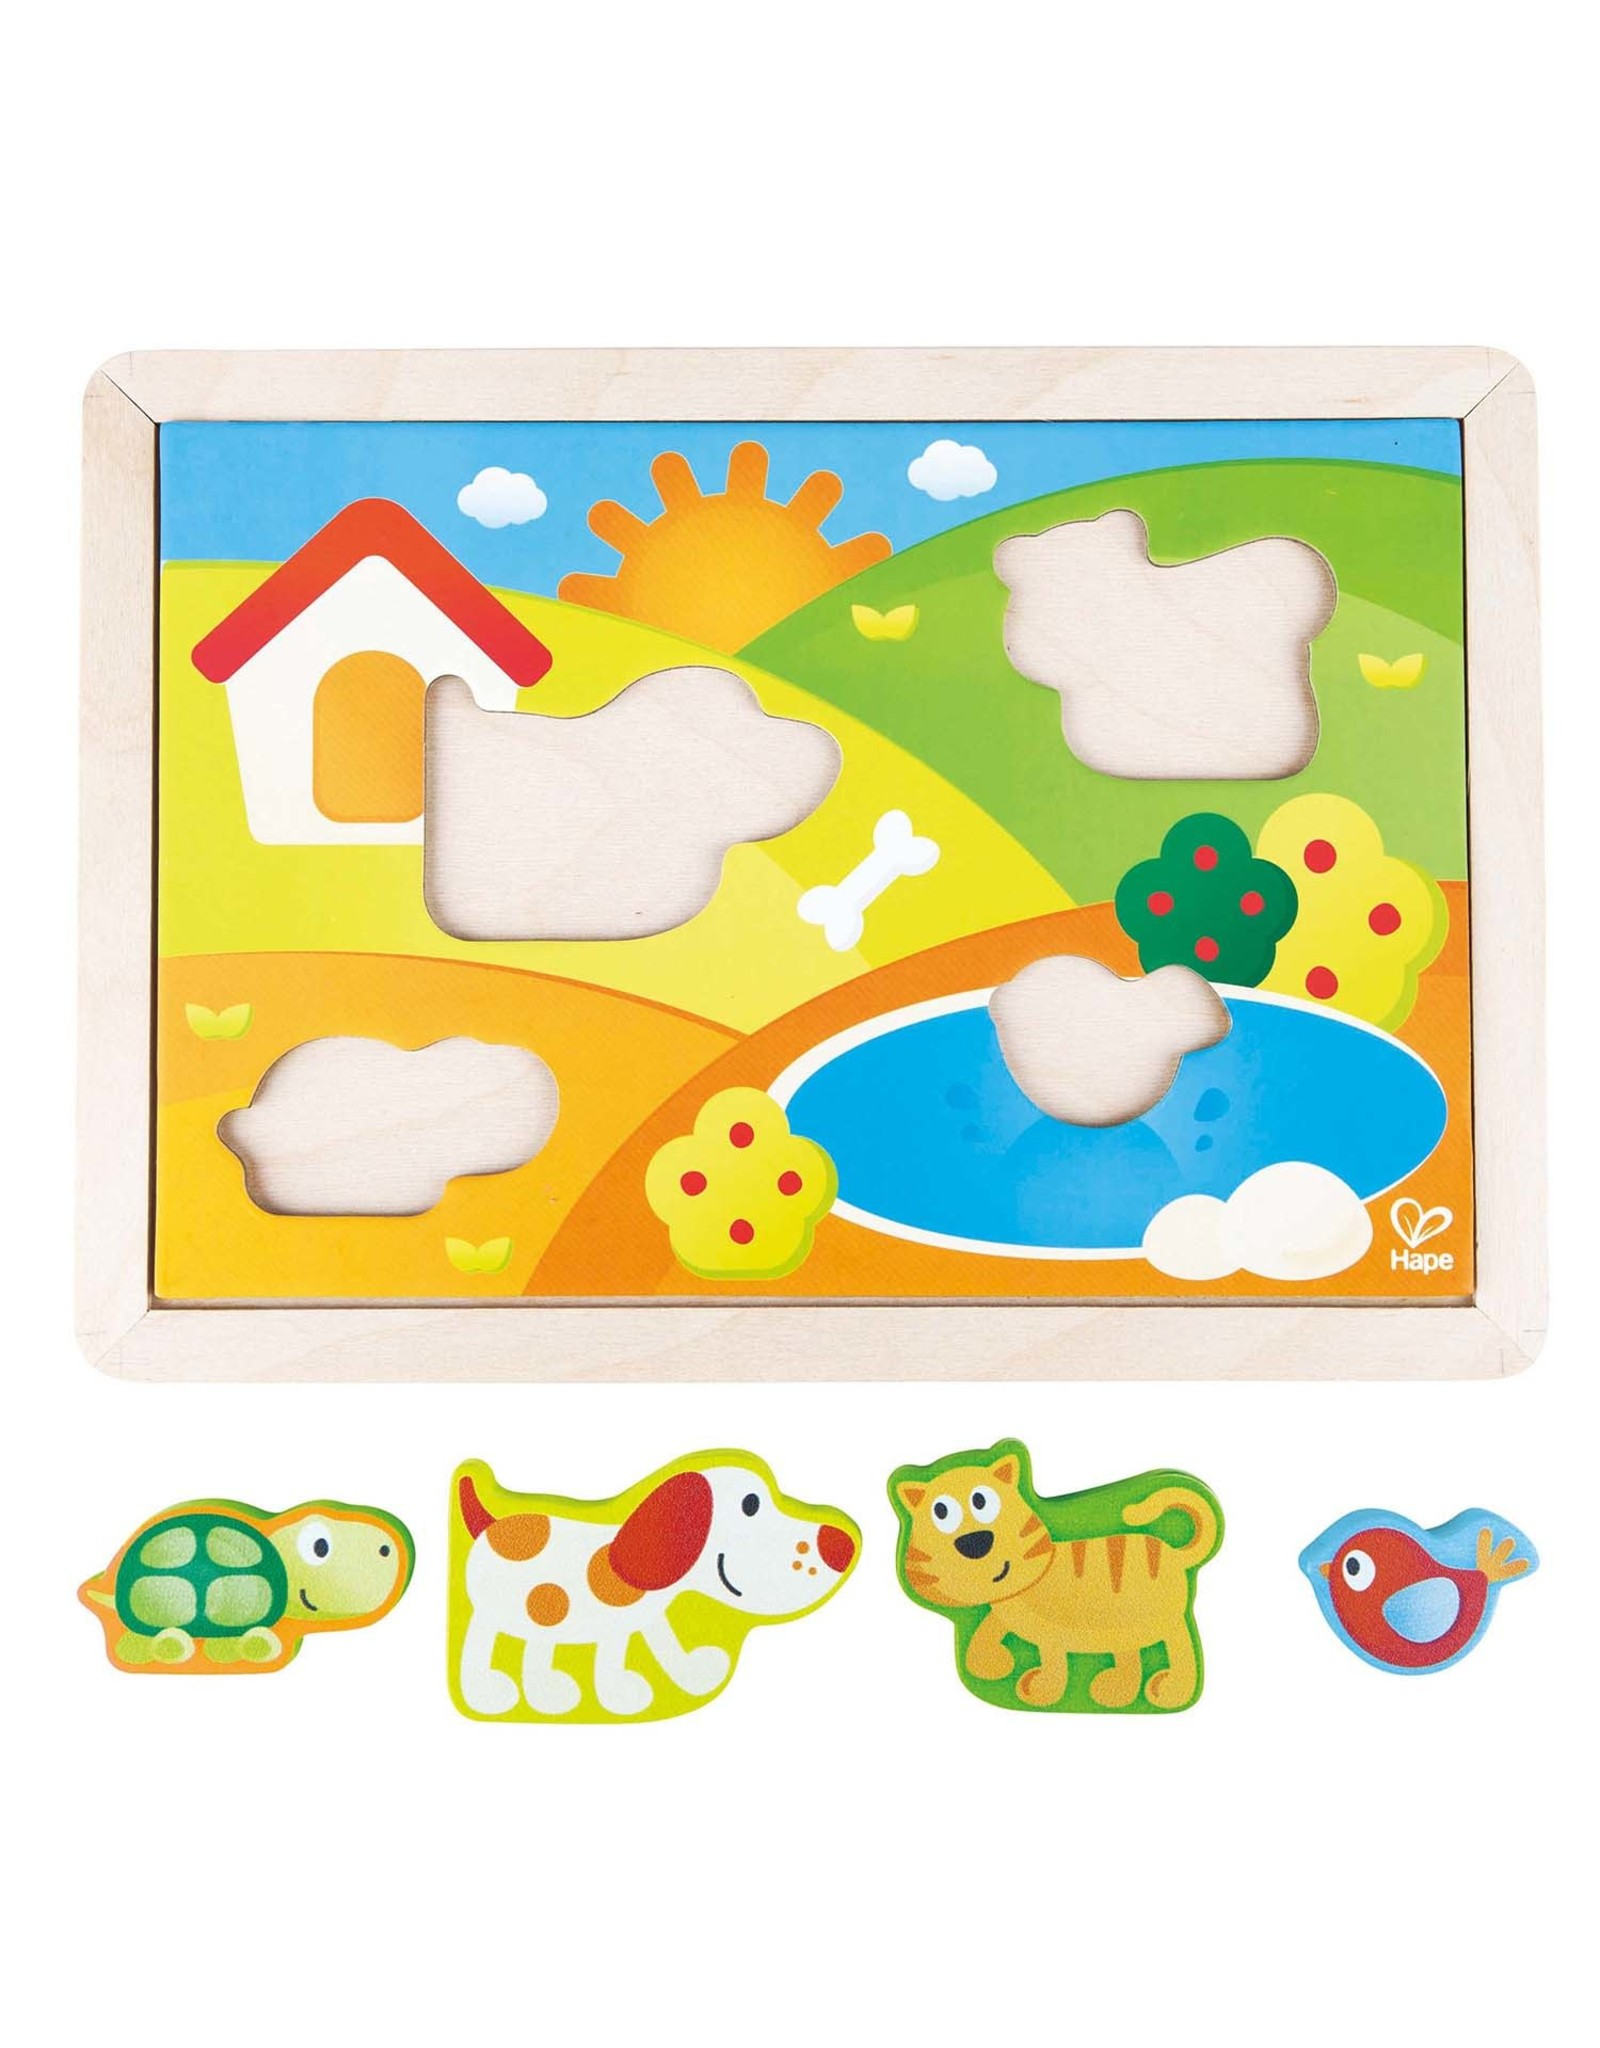 Hape Sunny Valley 3-in1 Puzzle